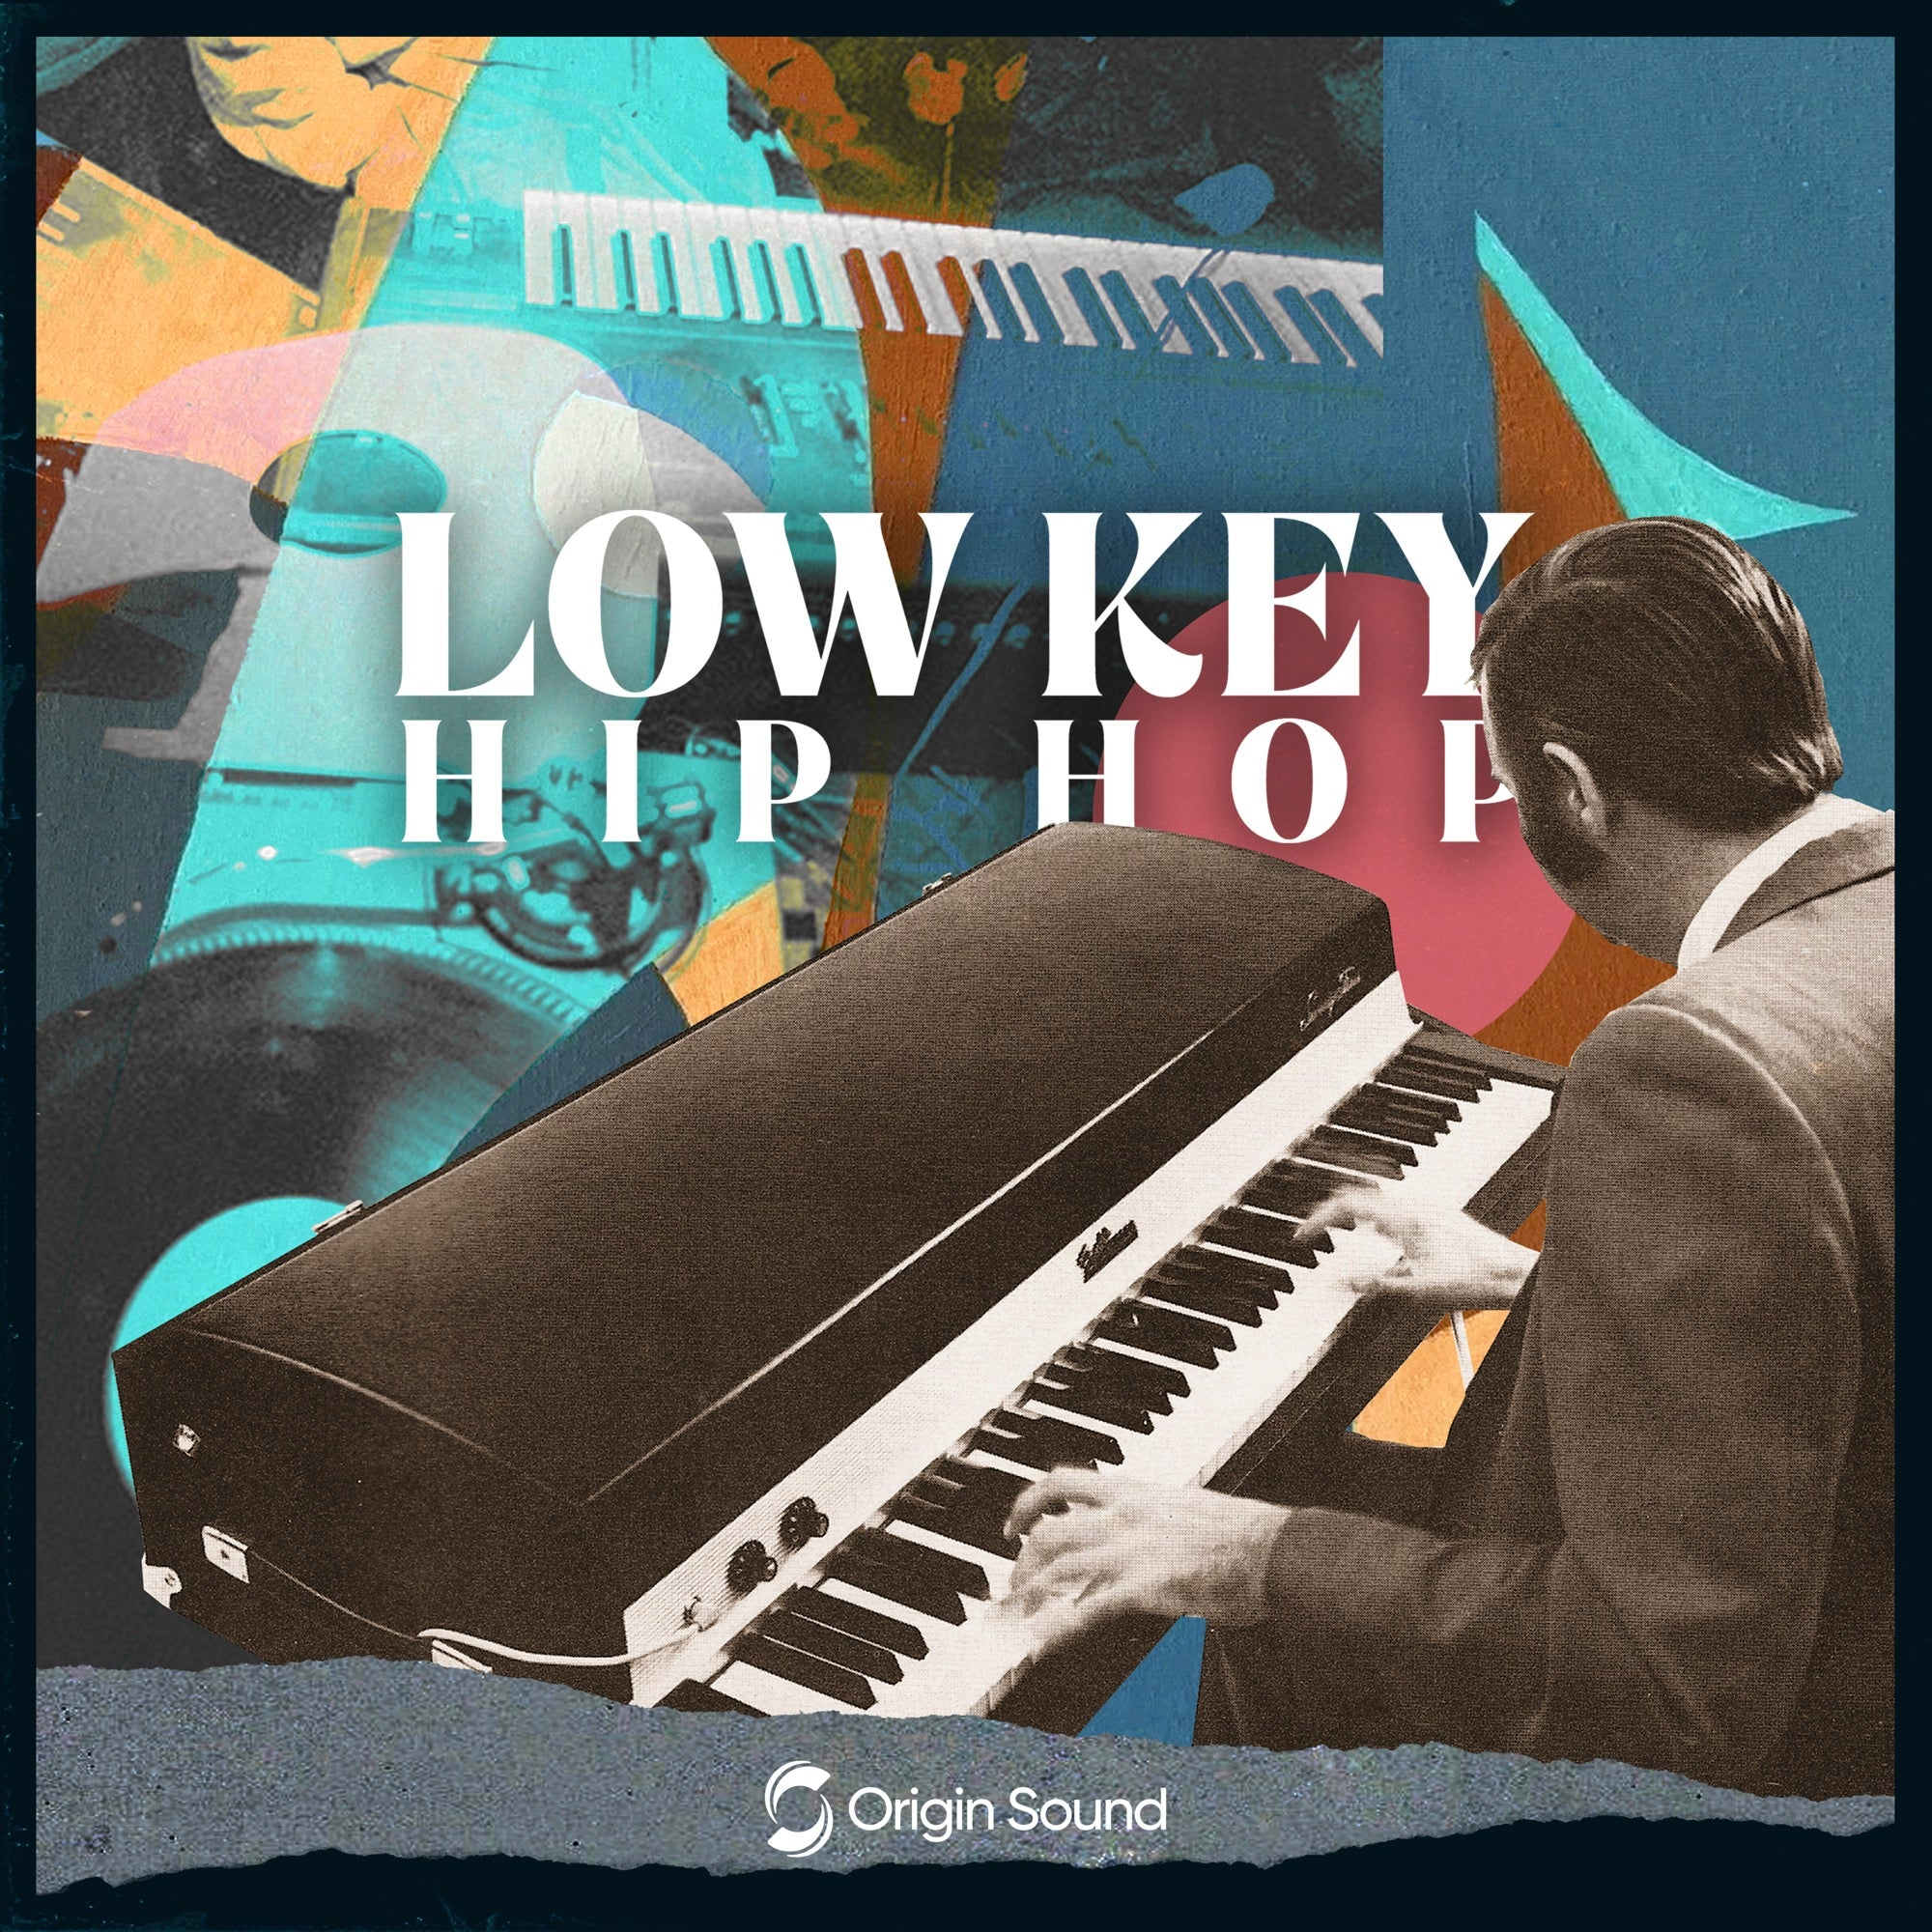 Low Key Hip Hop - Experimental Beats Sample Pack, Origin Sound, Origin Sound - Origin Sound samples royalty free fundamental ambience pack edm electronic ableton live fl studio logic pro piano drums keys bass chords midi melodies IDM organic downtempo tisoki presets elysian utopia free samples